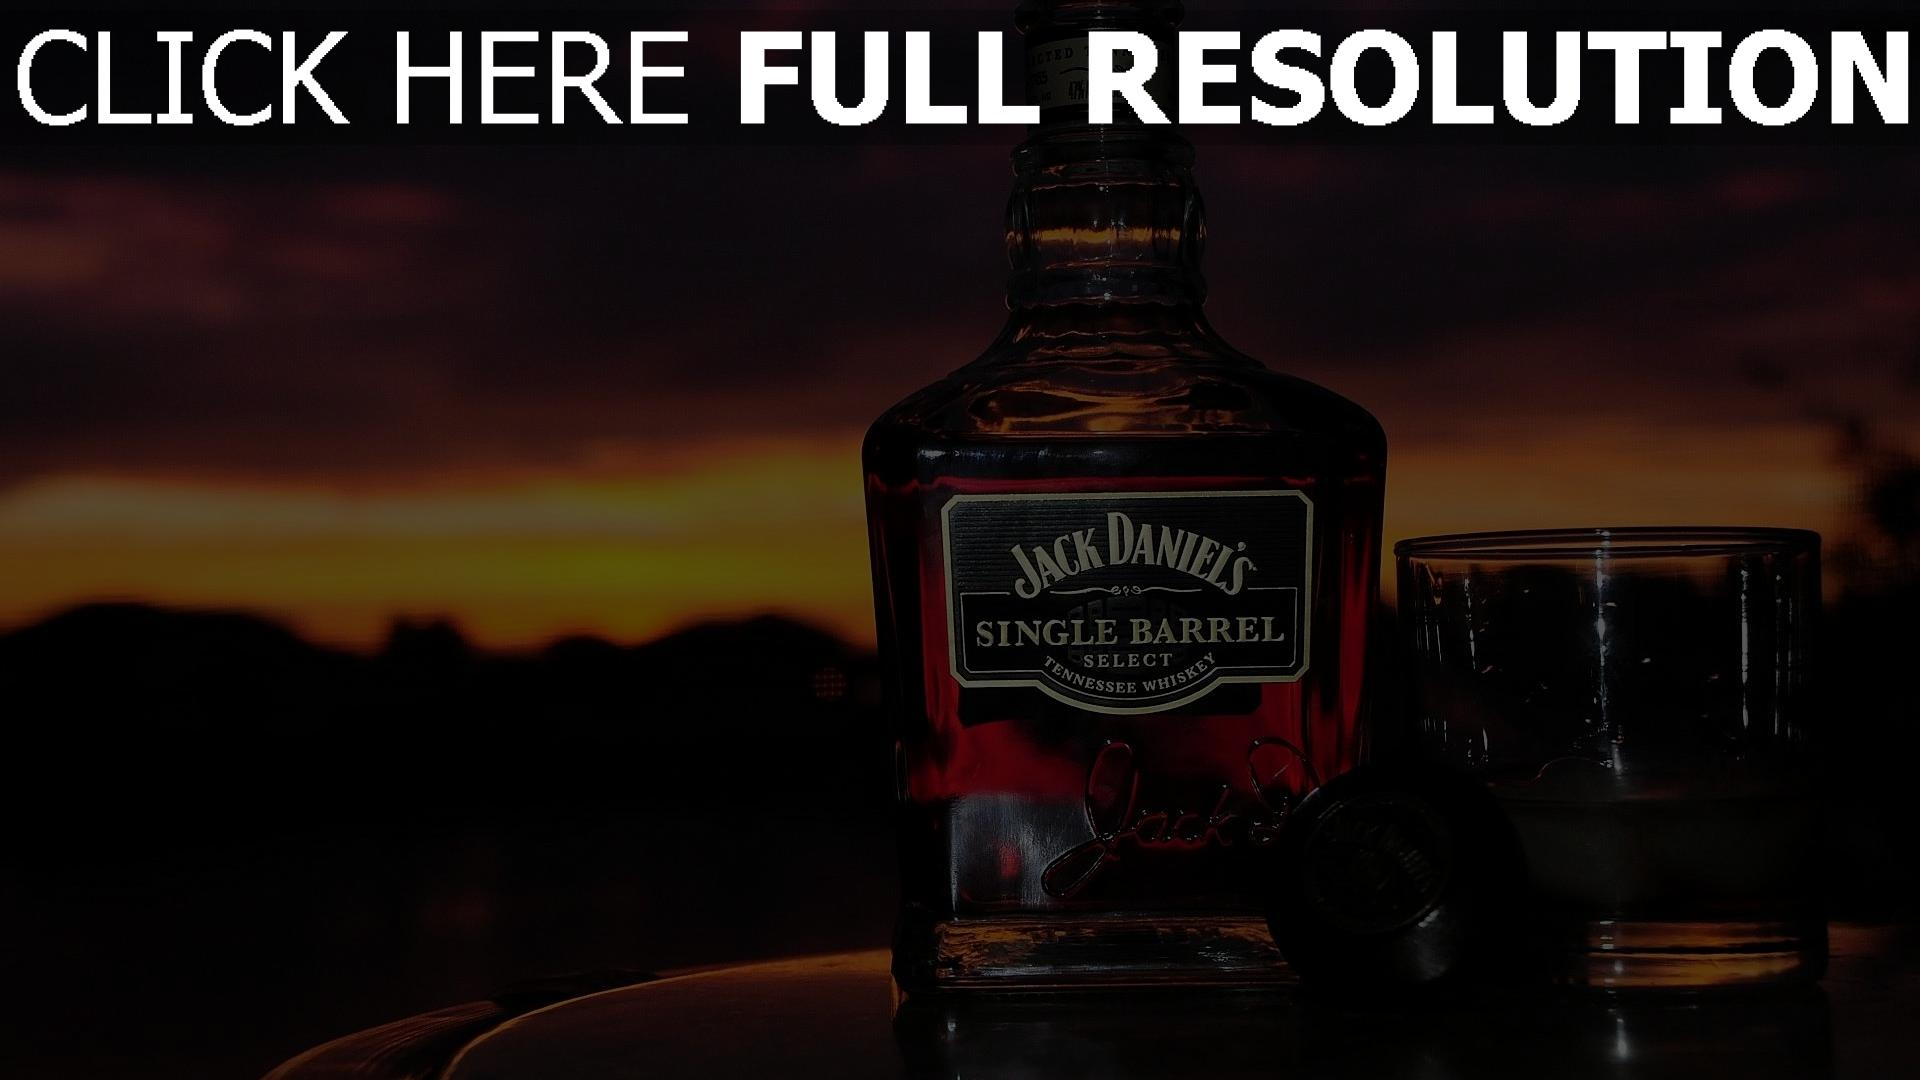 fond d 39 cran hd jack daniels soir e verre whisky images et photos. Black Bedroom Furniture Sets. Home Design Ideas